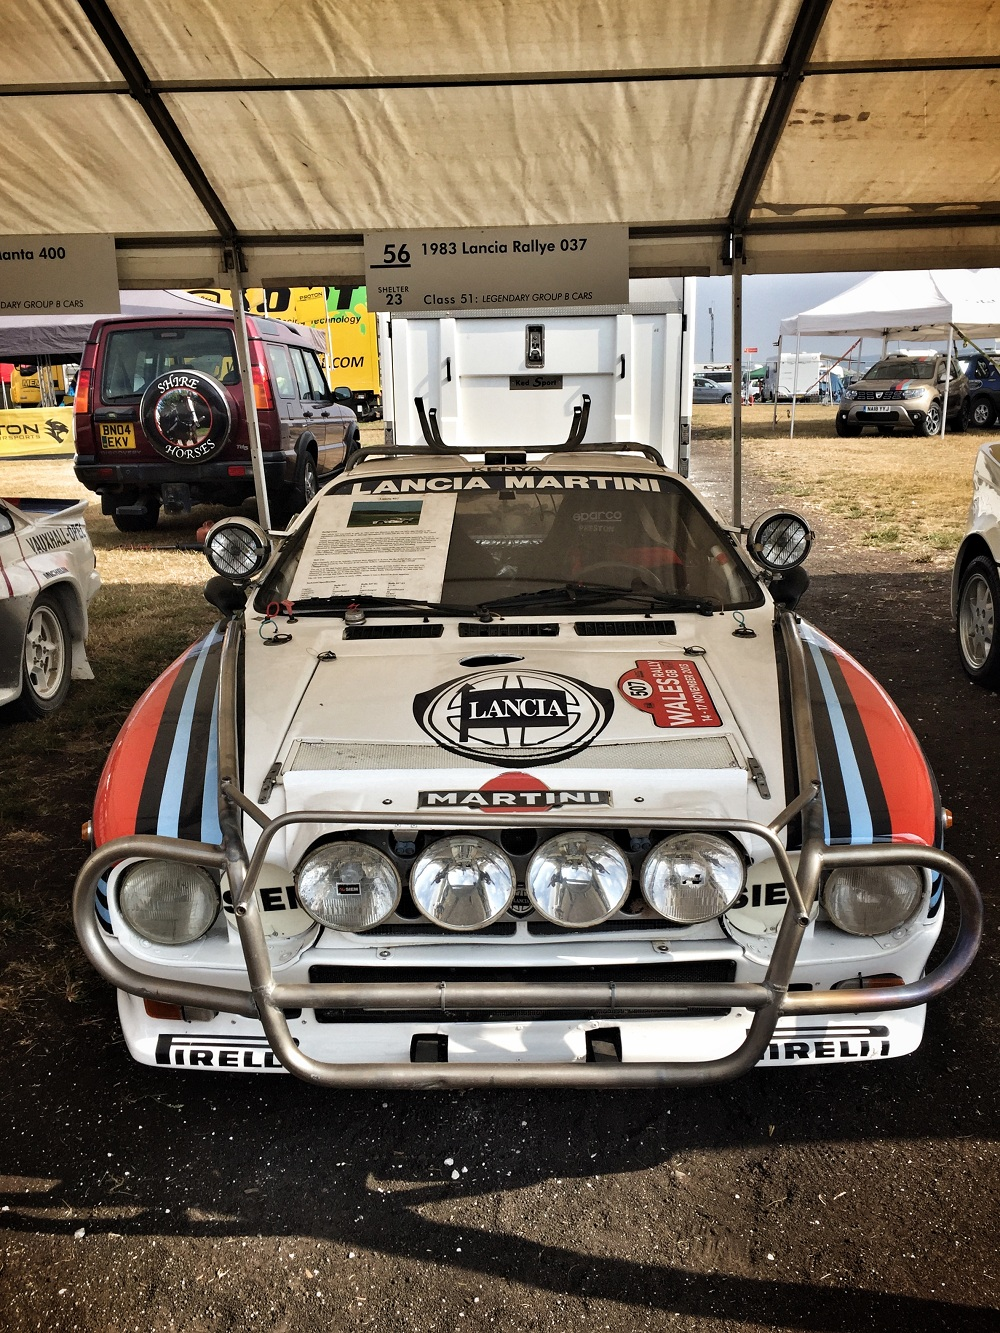 Lancia Rallye car - Group B